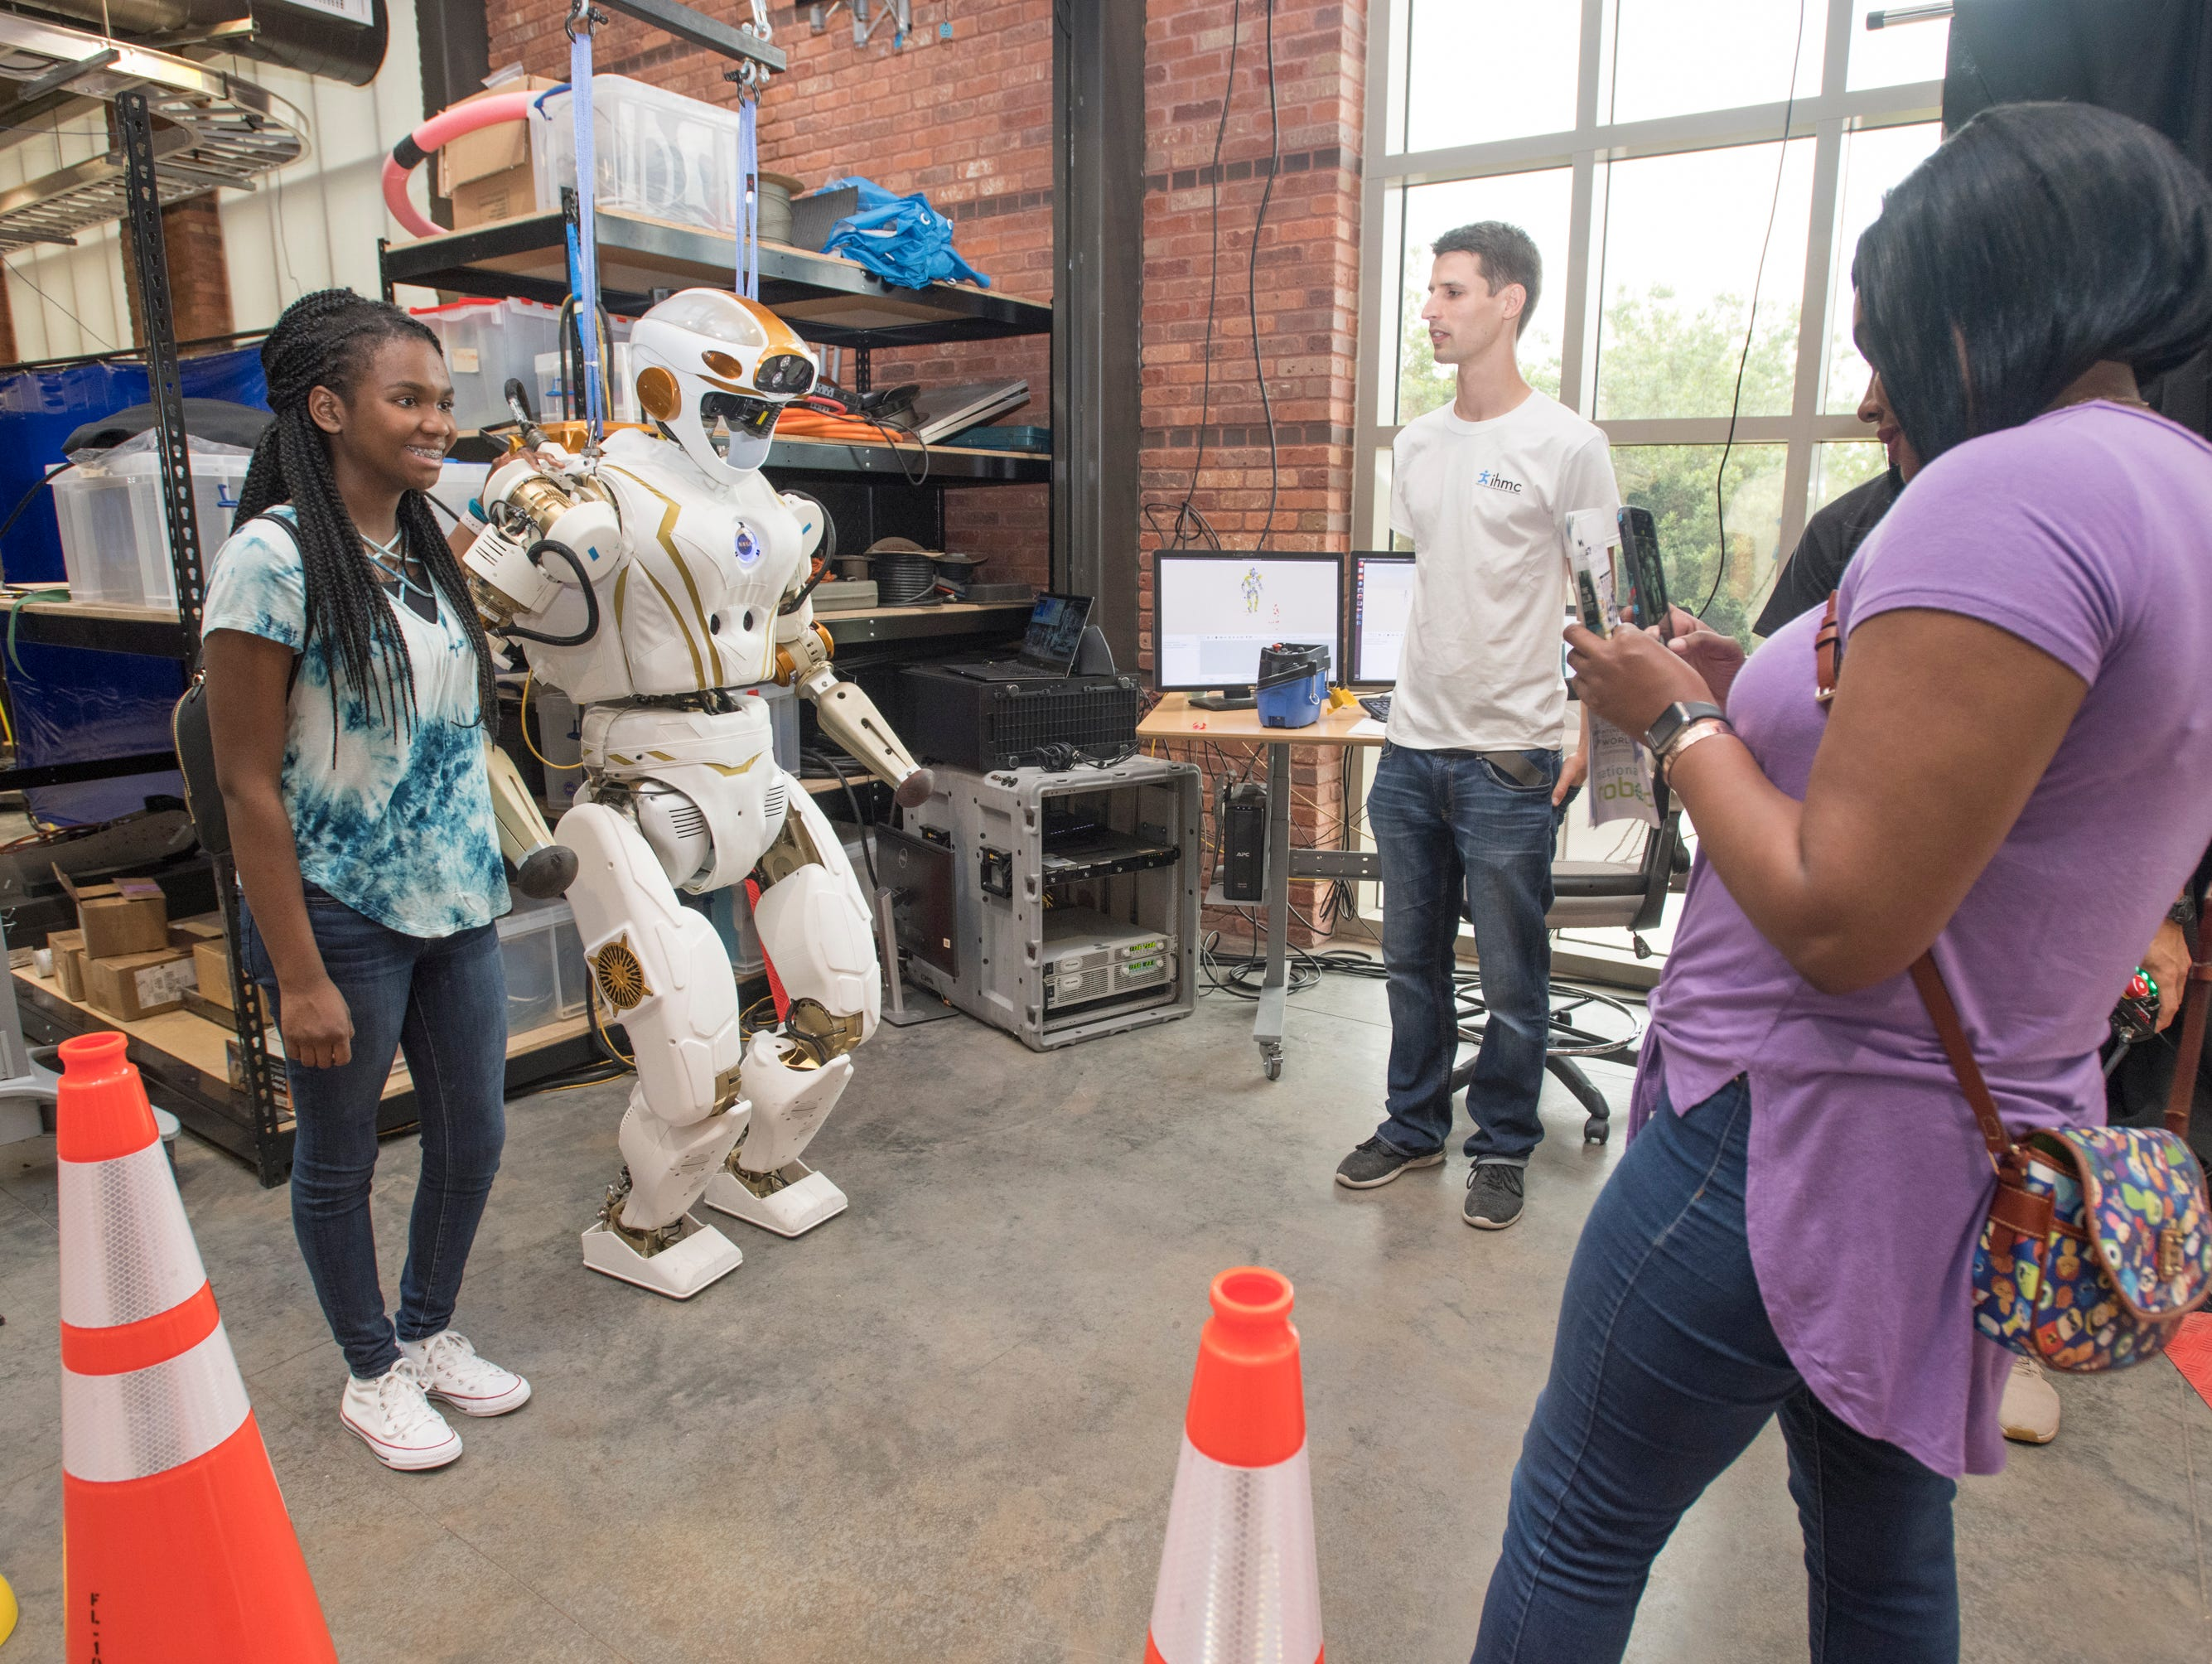 Danielle Diggs snaps a photo of her sister Destinie Diggs, 16, as she poses with the Valkyrie robot during the IHMC Open House in downtown Pensacola on Friday, April 12, 2019.